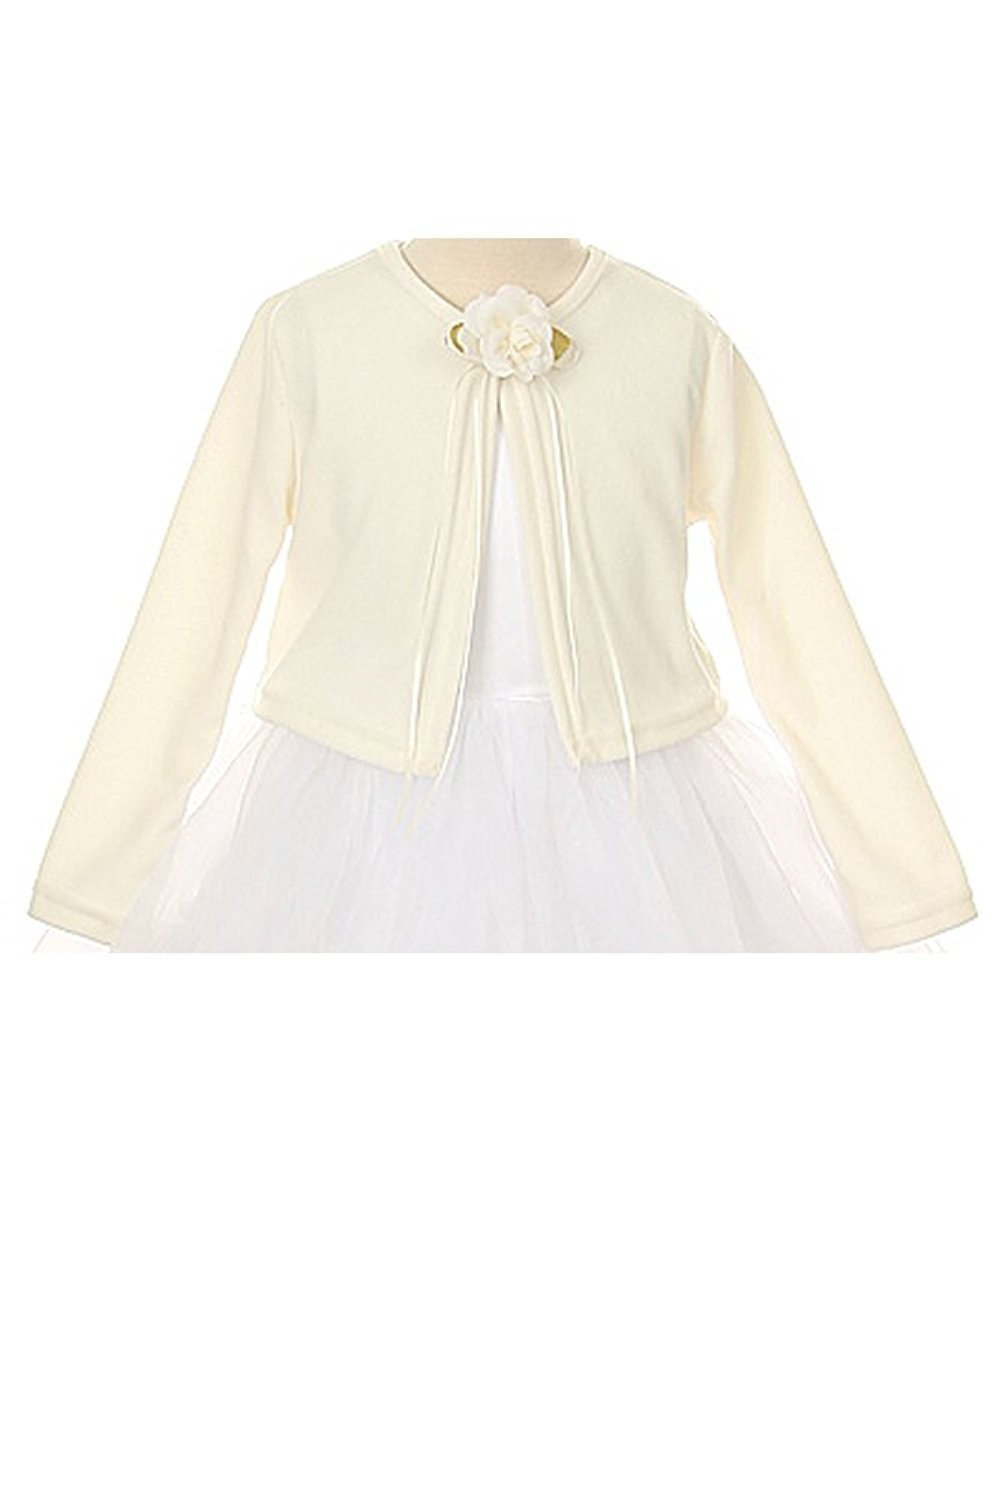 Basic Knit Special Occasion Girl's Cardigan Jacket Sweater - Ivory Girl 9/10 by Kid's Dream